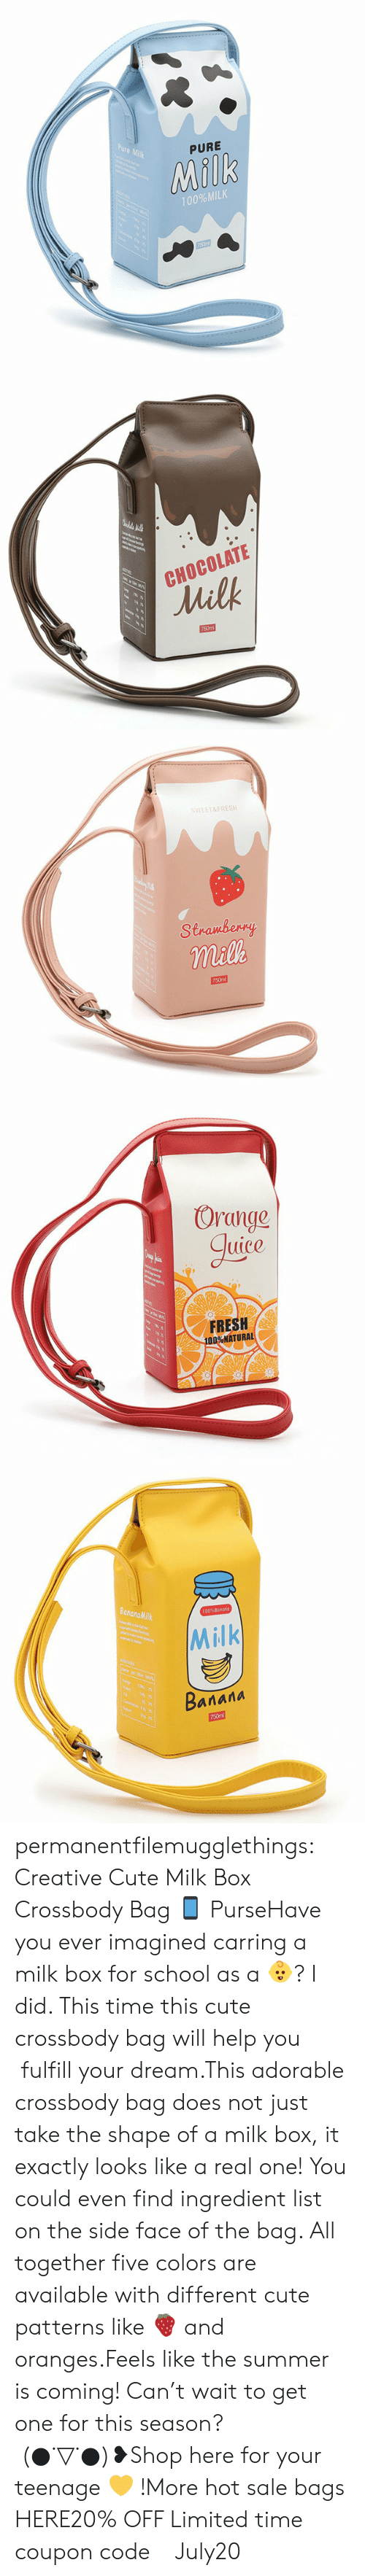 oranges: Pure Milk  PURE  Milk  100%MILK  750ml   CHOCOLATE  Milk  750m   WEET&FRESH  Stramberry  milk  750m   Orange  guice  ant  FRESH  100%NATURAL   BananaMilk  100%Bonana  Milk  riteng  Baлала  750m permanentfilemugglethings:  Creative Cute Milk Box Crossbody Bag 📱 PurseHave you ever imagined carring a milk box for school as a 👶? I did. This time this cute crossbody bag will help you fulfill your dream.This adorable crossbody bag does not just take the shape of a milk box, it exactly looks like a real one! You could even find ingredient list on the side face of the bag. All together five colors are available with different cute patterns like 🍓 and oranges.Feels like the summer is coming! Can't wait to get one for this season? (●˙▽˙●)❥Shop here for your teenage 💛 !More hot sale bags HERE20% OFF Limited time coupon code : July20